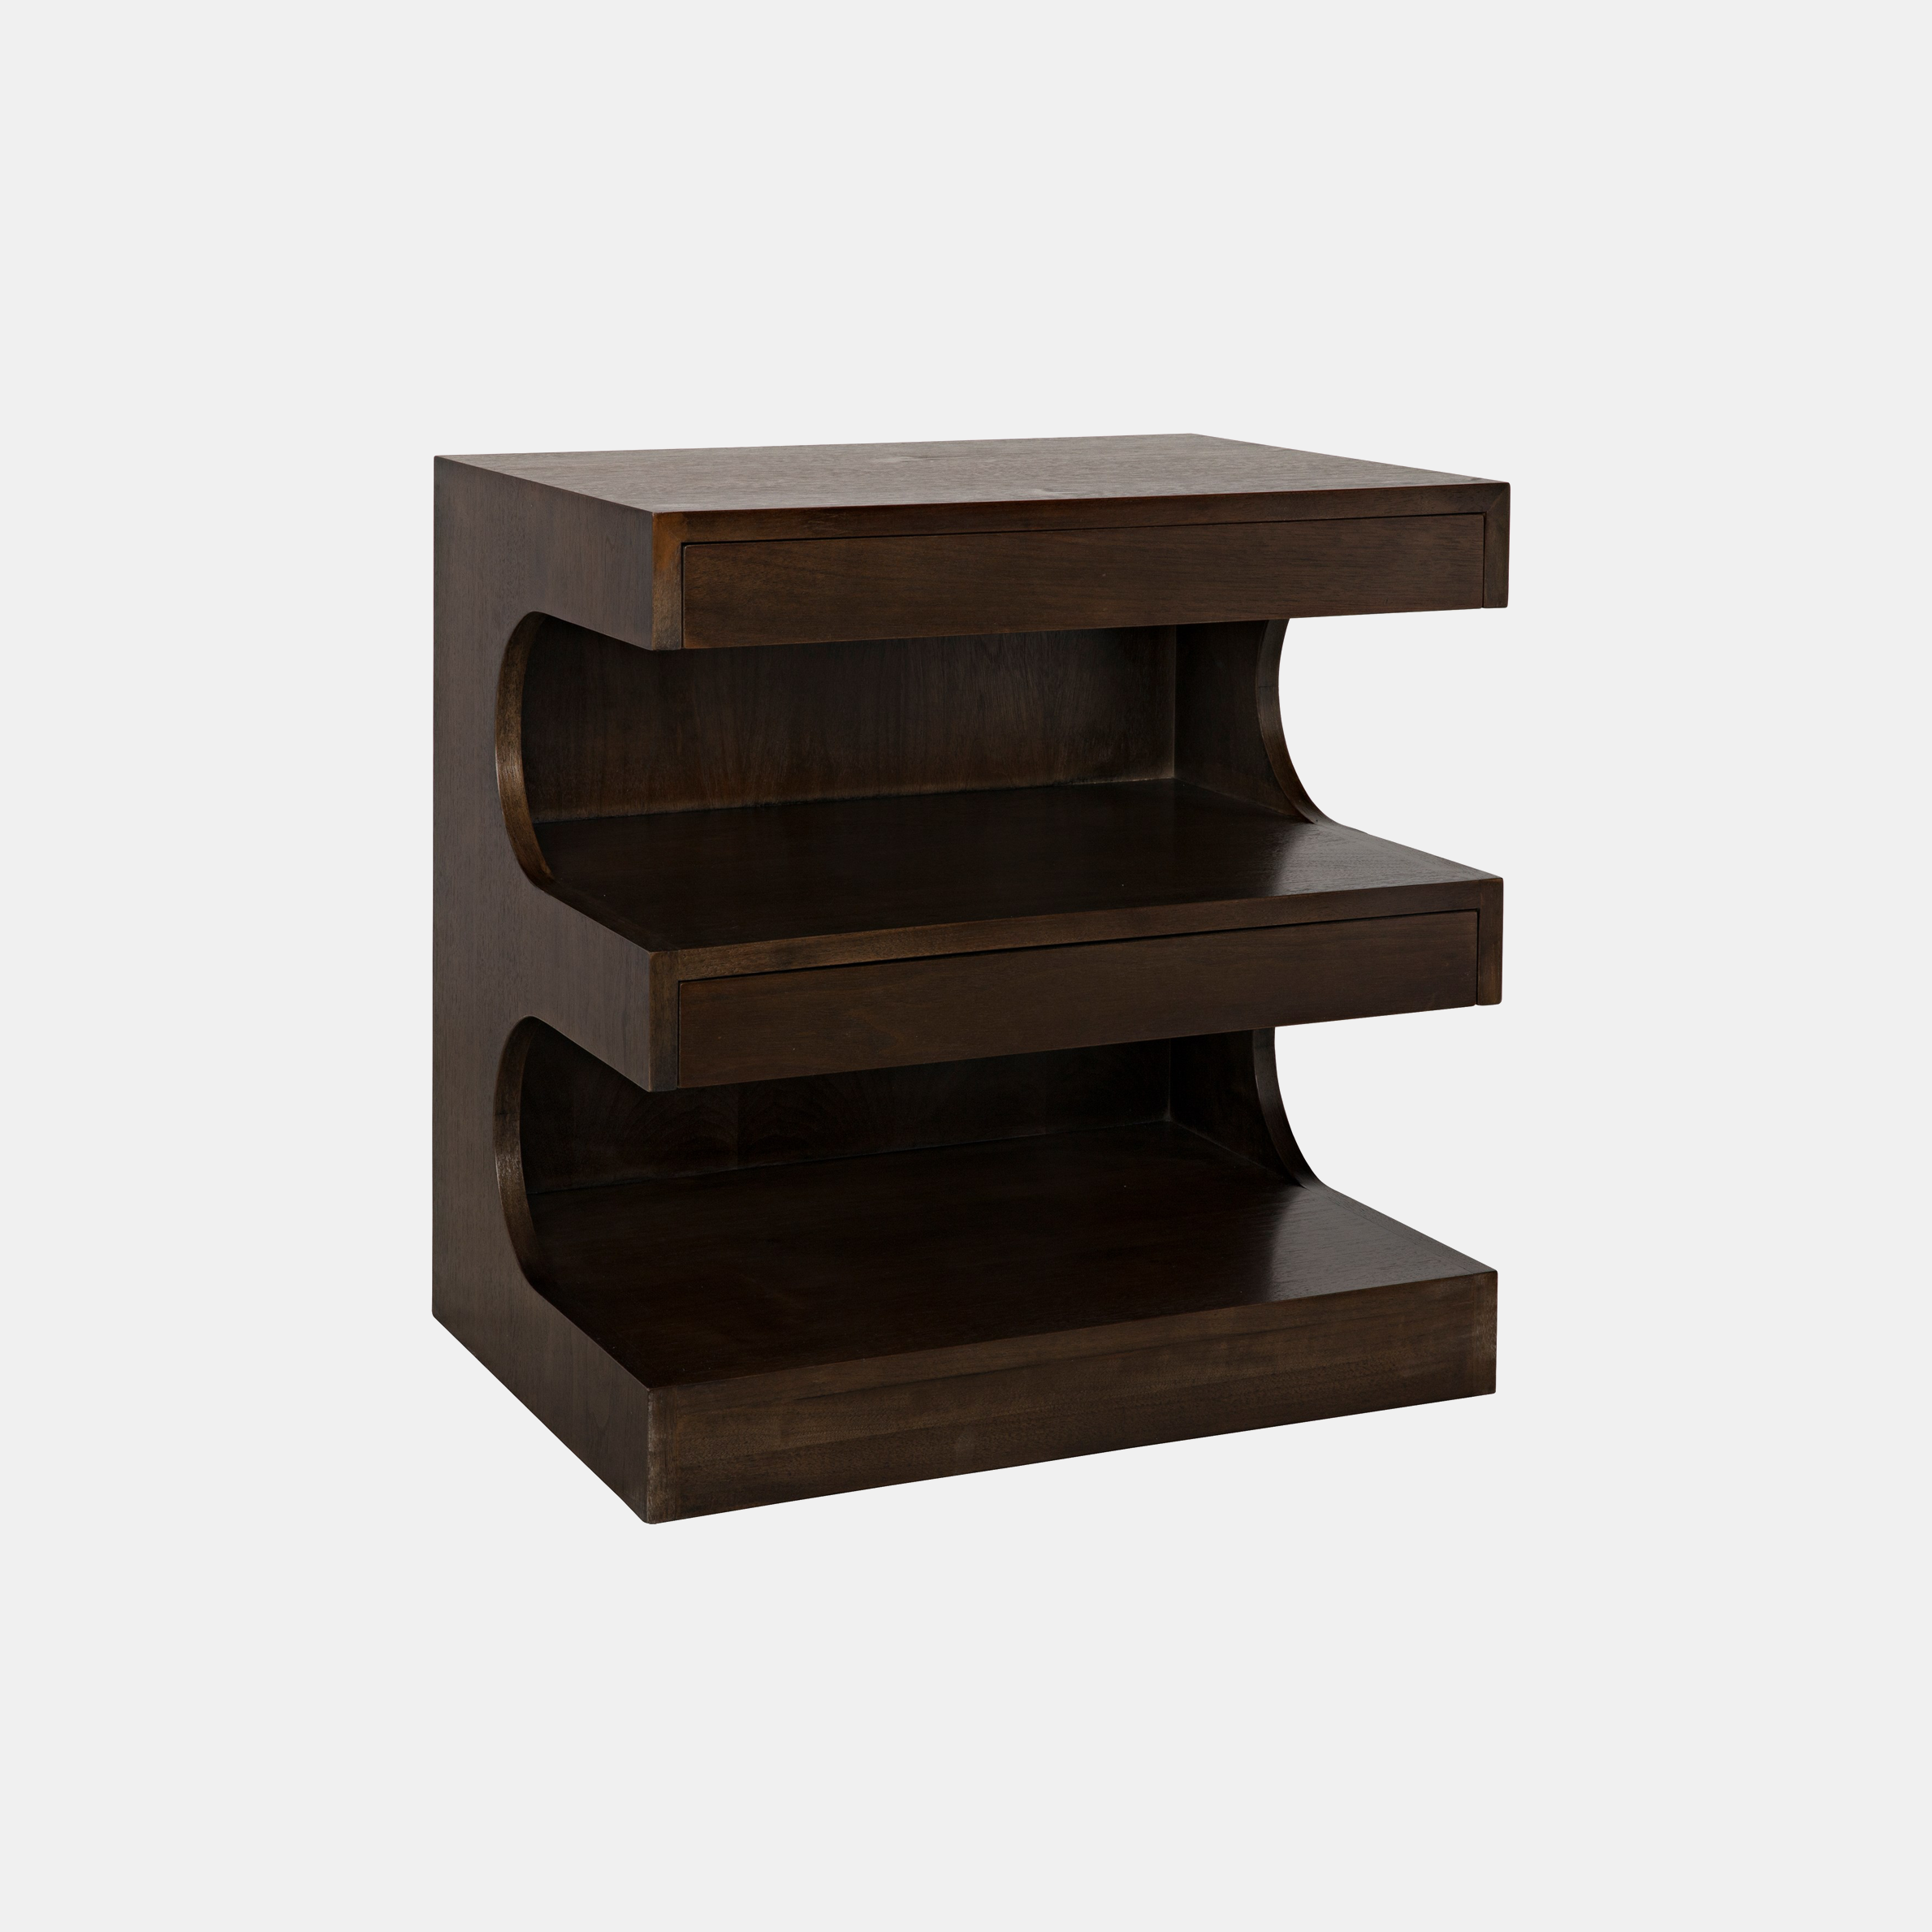 """Radcliff Side Table  24""""l x 16""""d x 24""""h  Available in walnut (shown) or gray wash wax fir. SKU569CFC"""